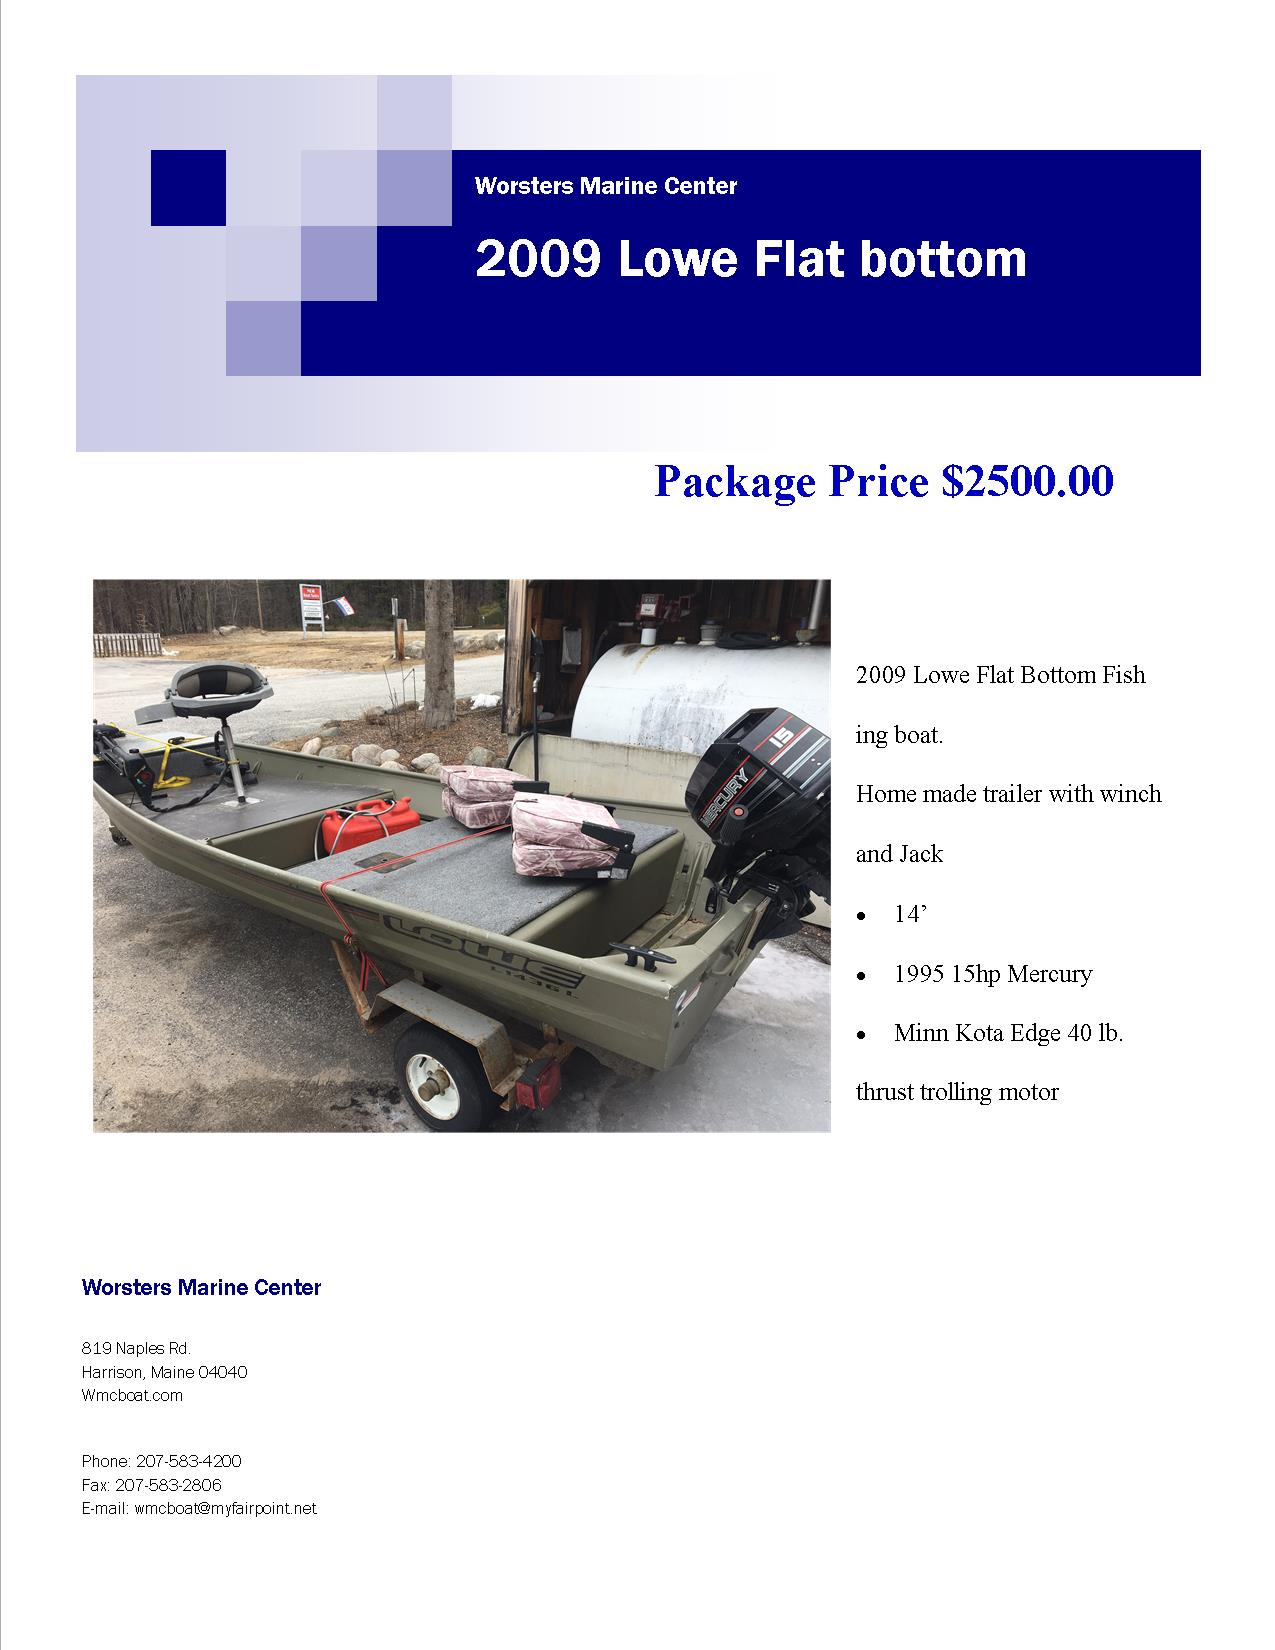 Lowe flat bottom thank for